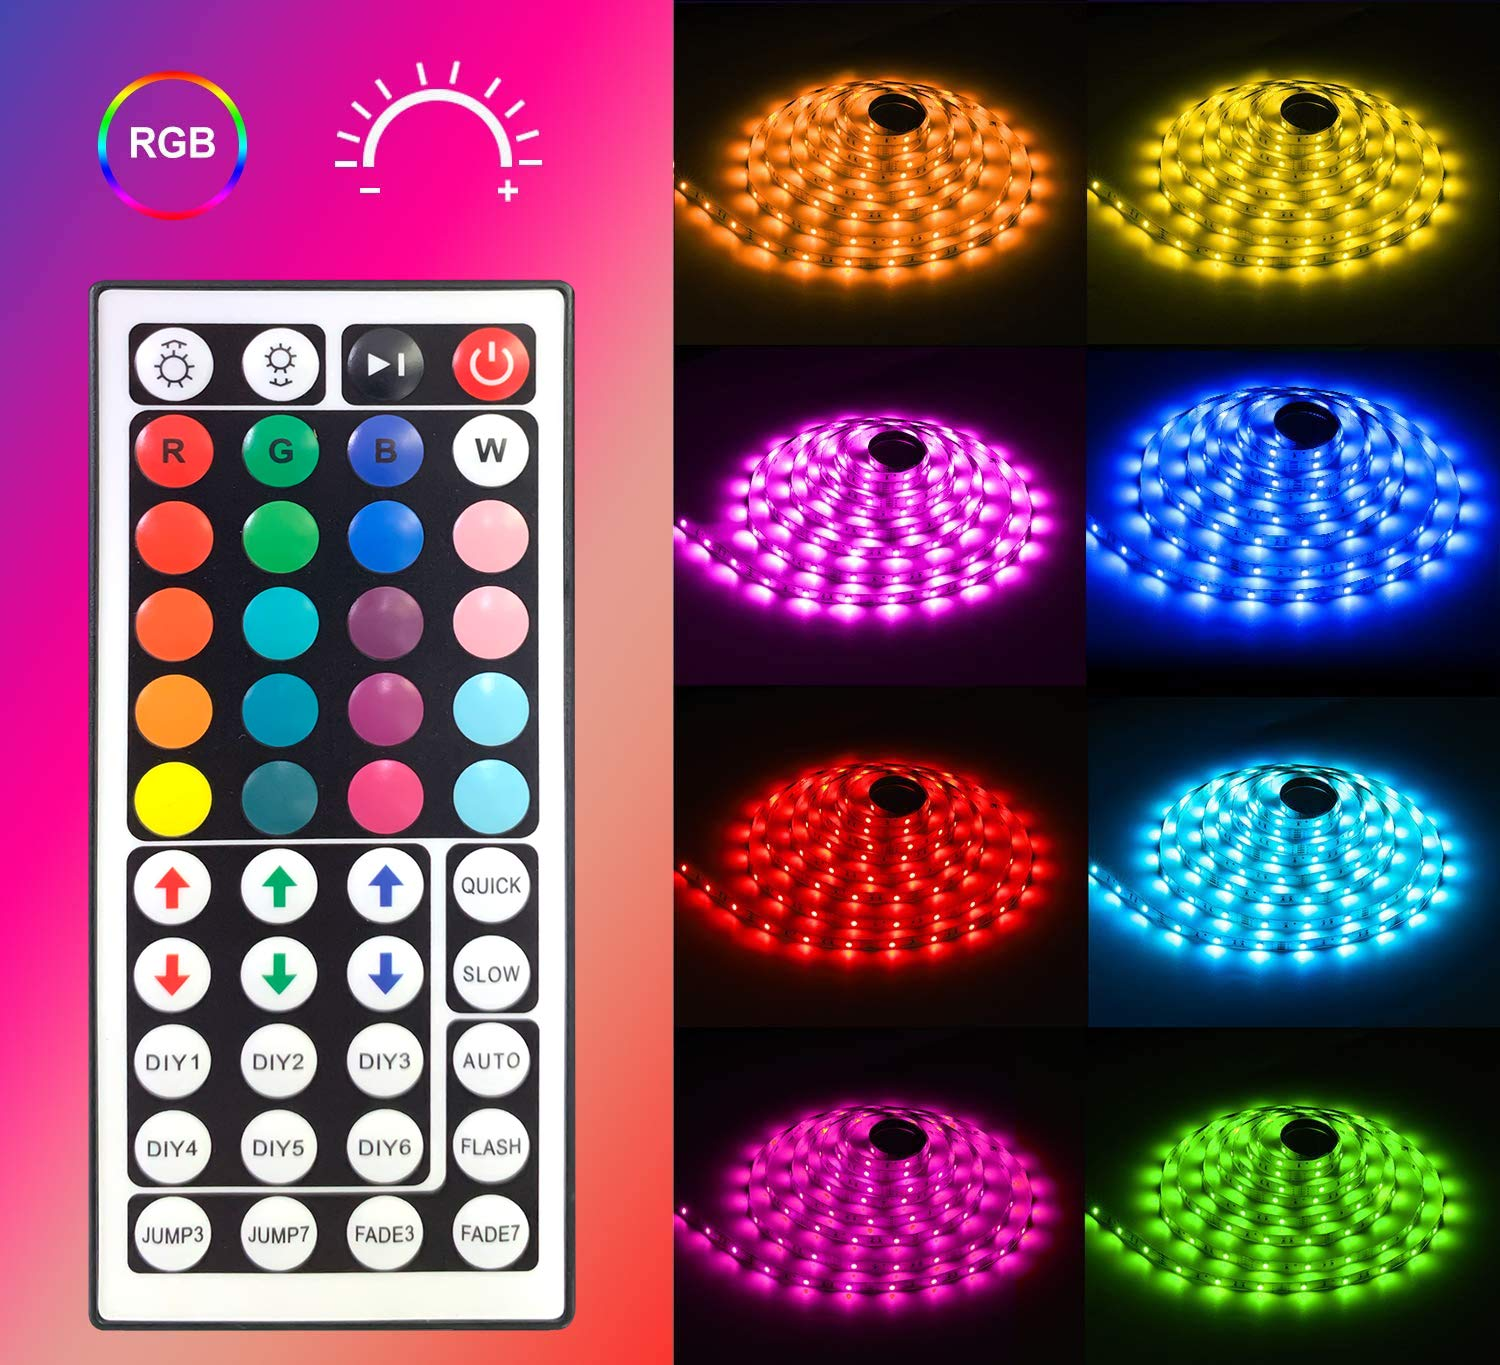 MINGER Led Strip Lights Kit 328Ft RGB Light Strip with Remote Controller Box and Support Clips for